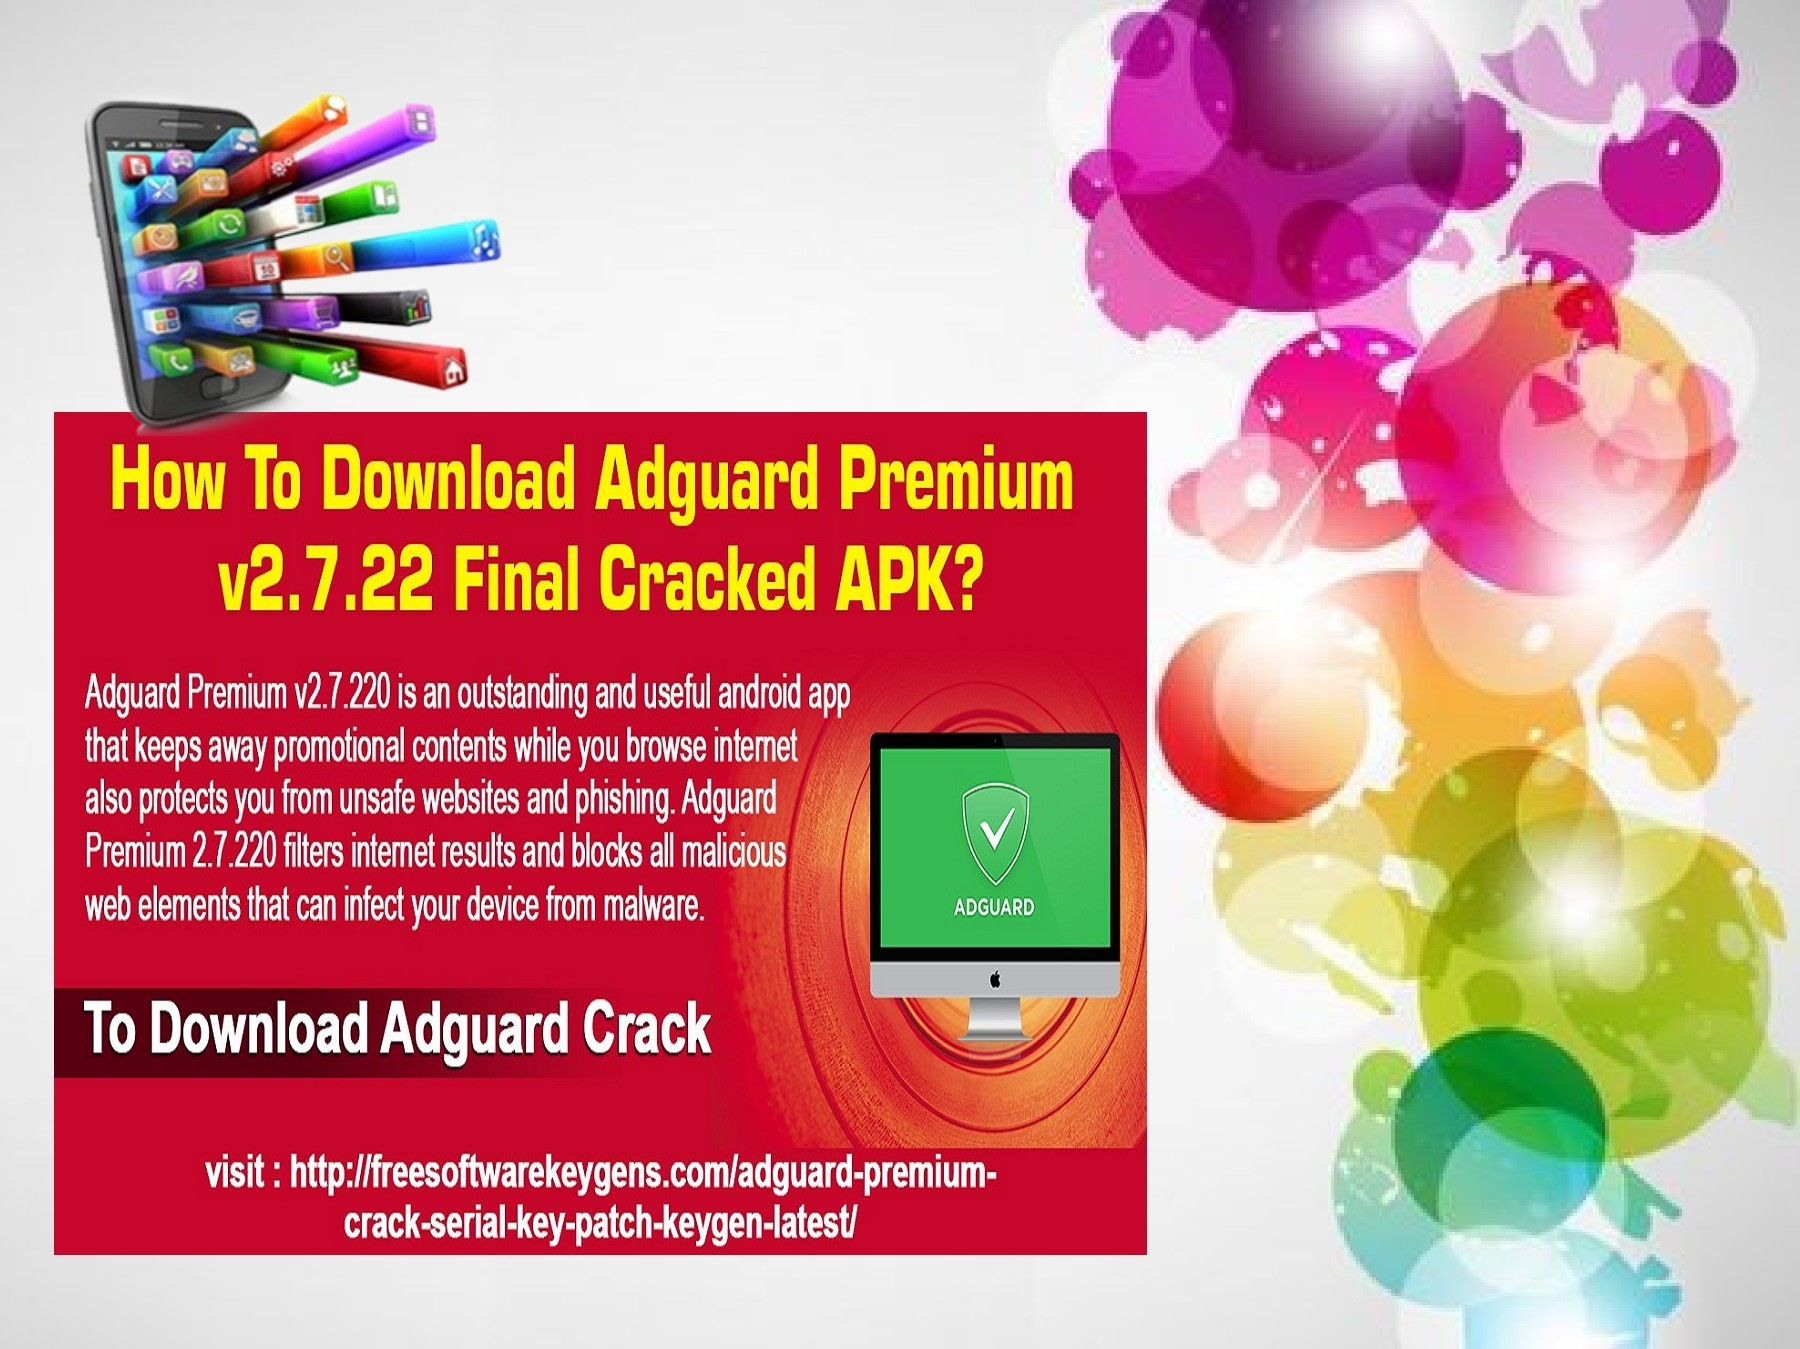 How To Download Adguard Premium v2 7 22 Final Cracked APK